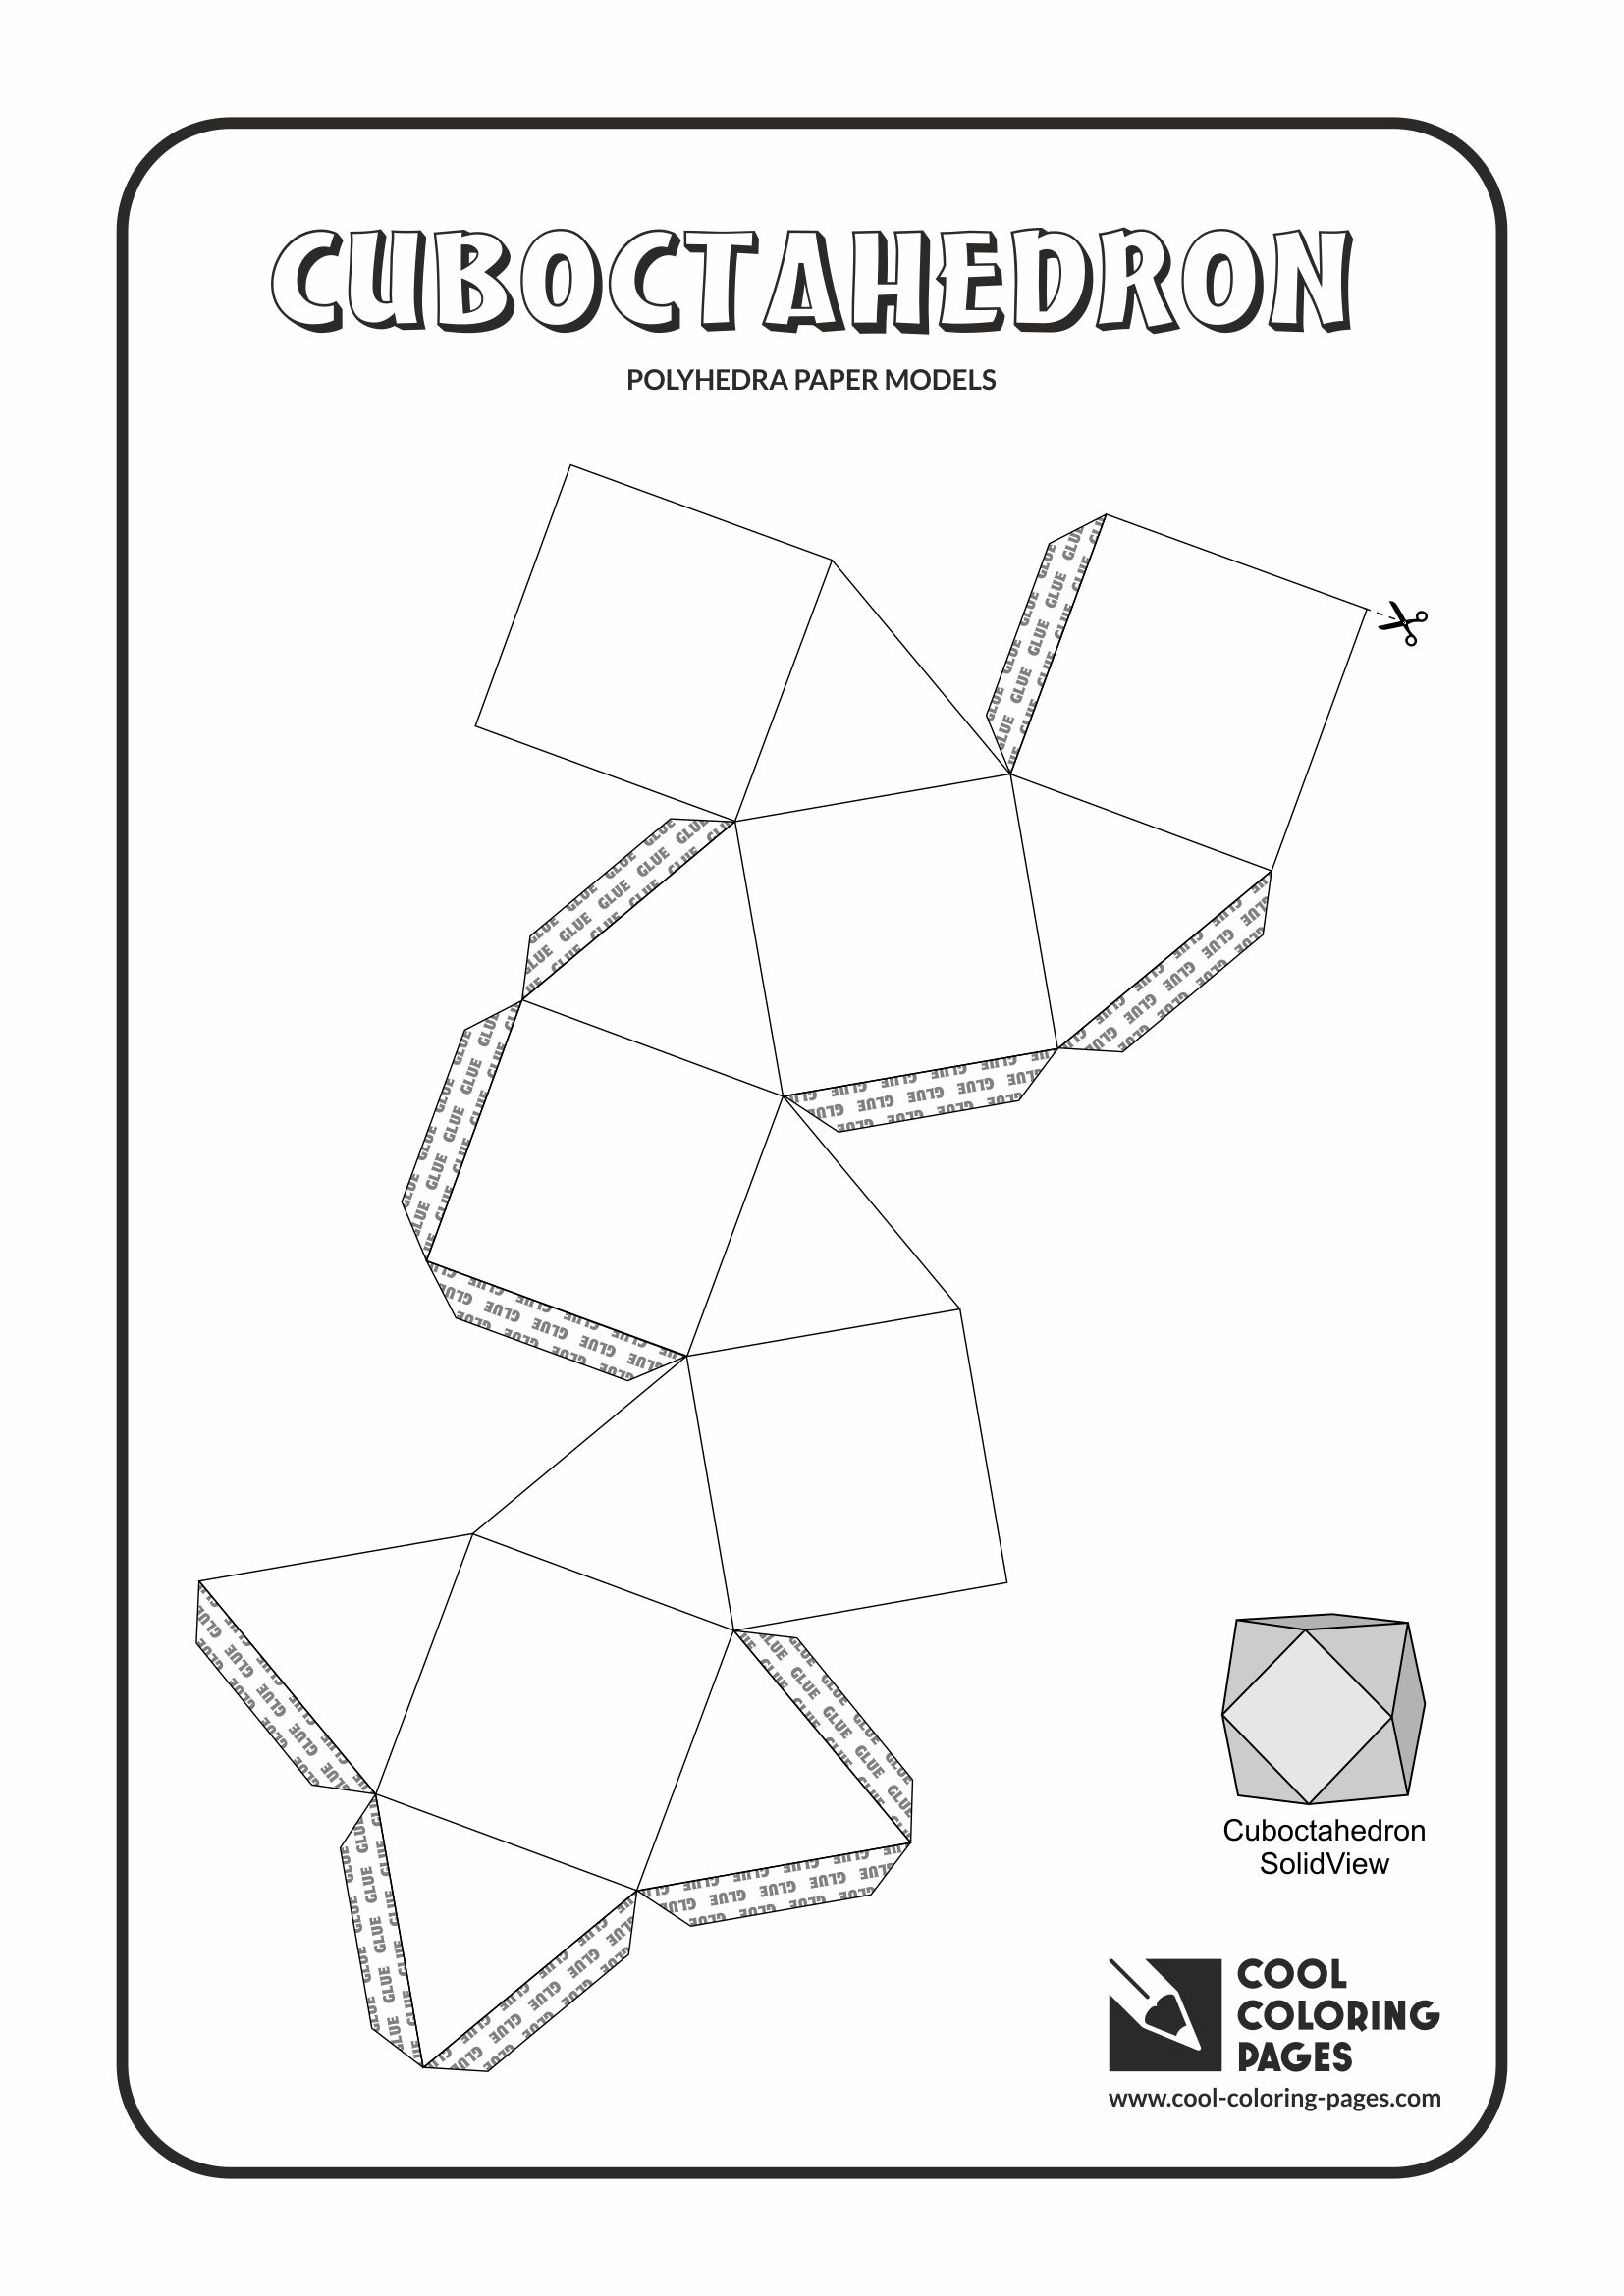 Cool Coloring Pages - Paper models of polyhedra / Paper solids models / Cuboctahedron